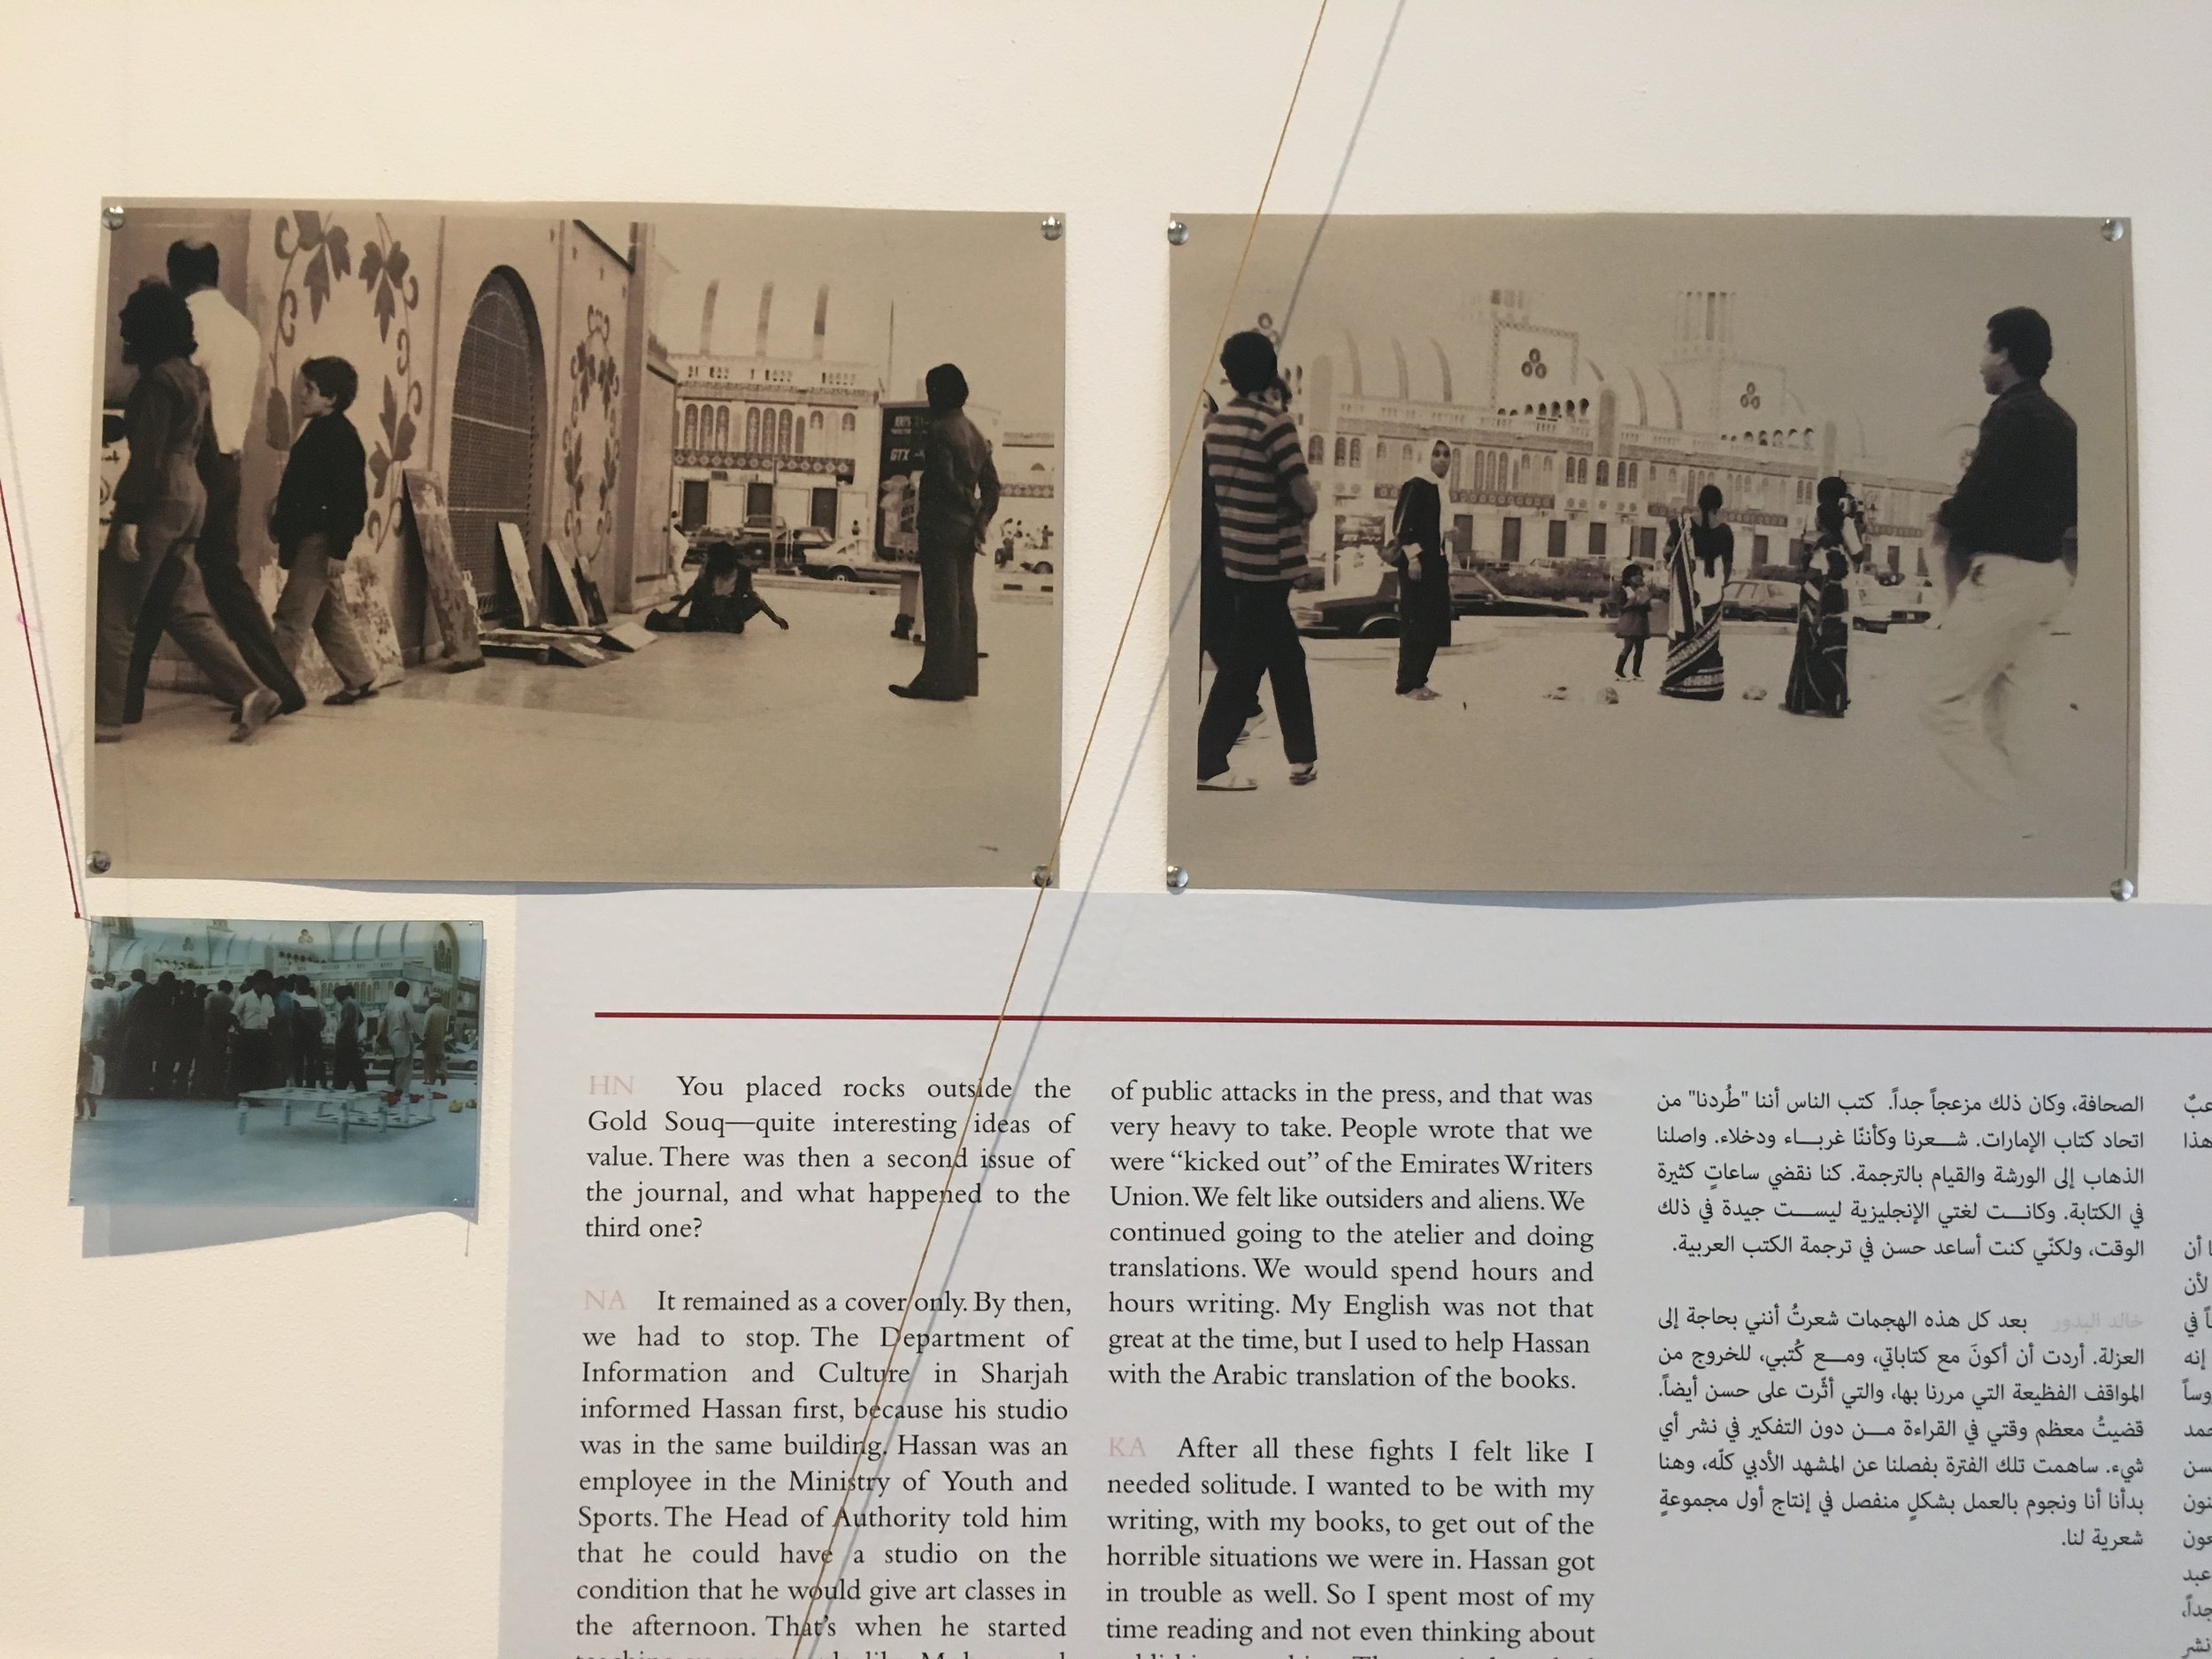 Annotations on the conversation include reproduced images, essays and articles written and produced in the early 1980s. Image taken by Anna Seaman